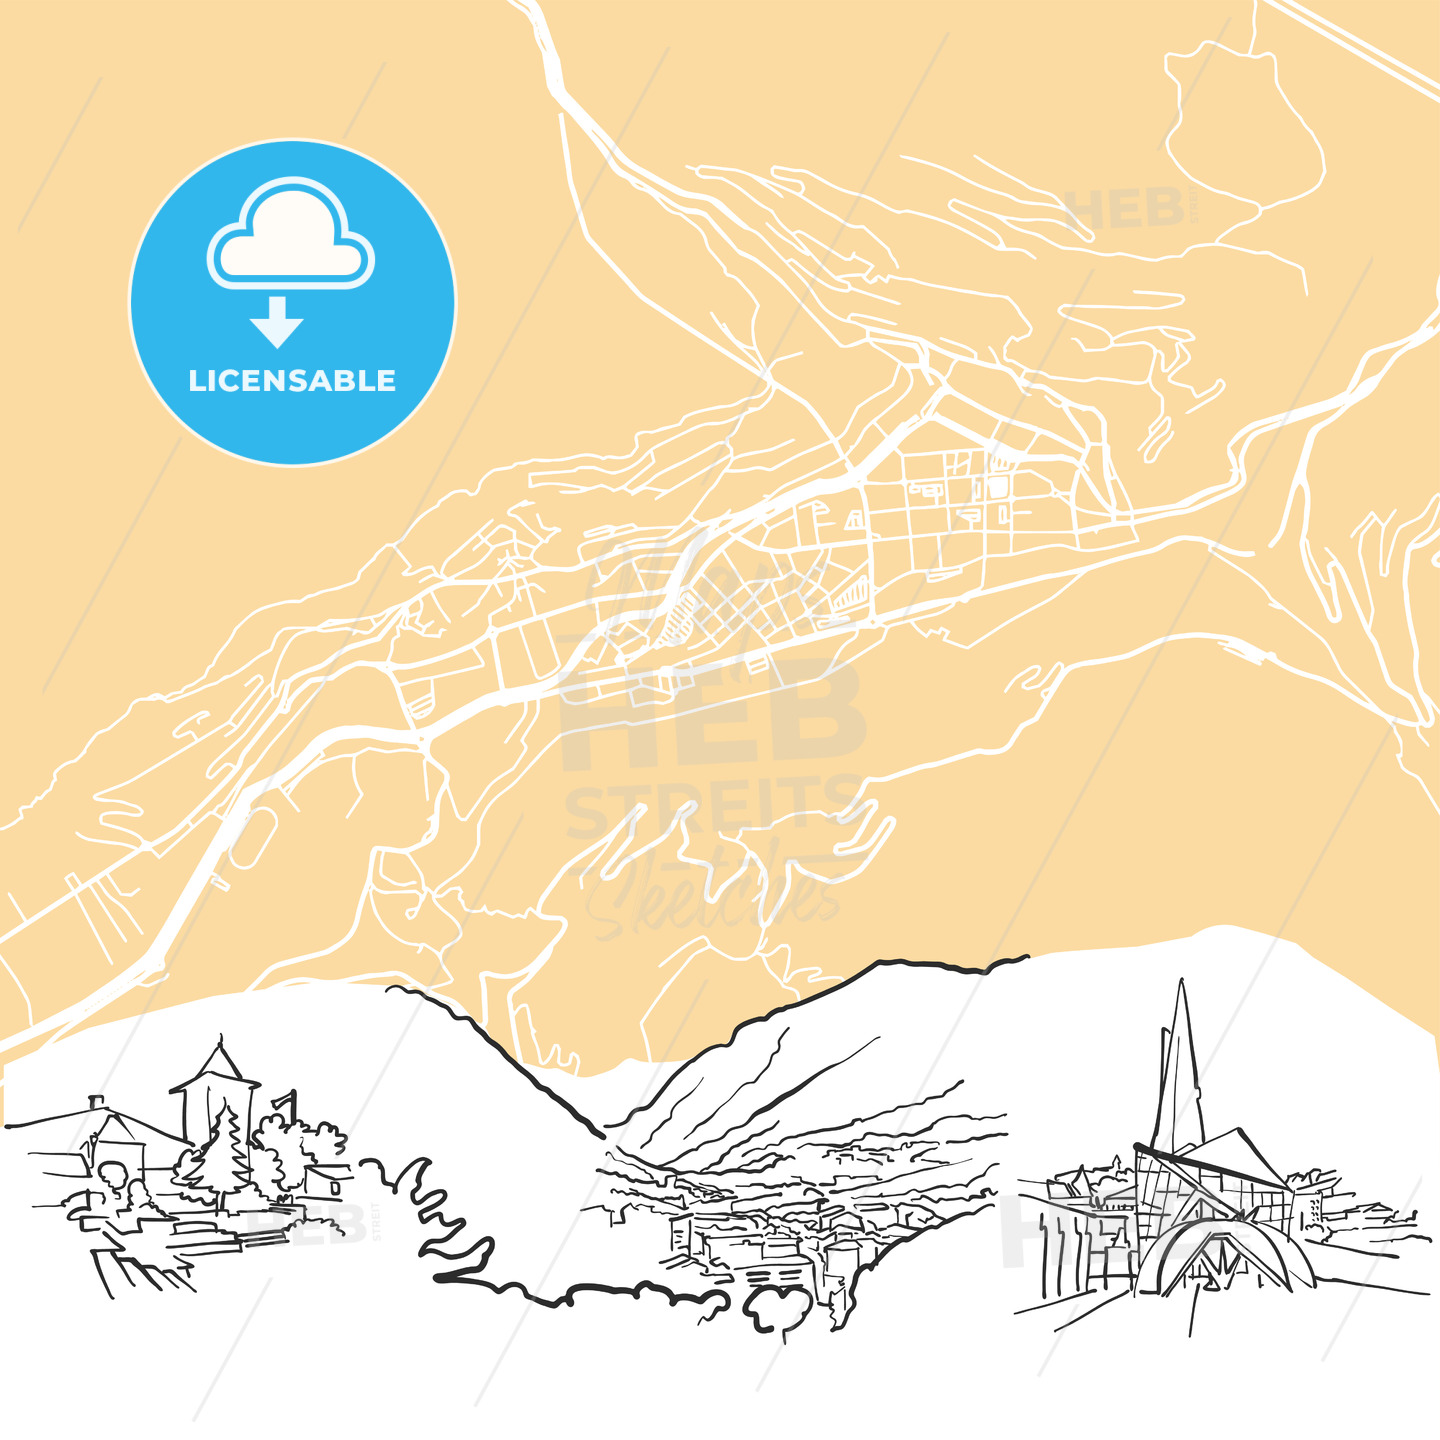 Andorra la Vella Background Map - HEBSTREIT's Sketches